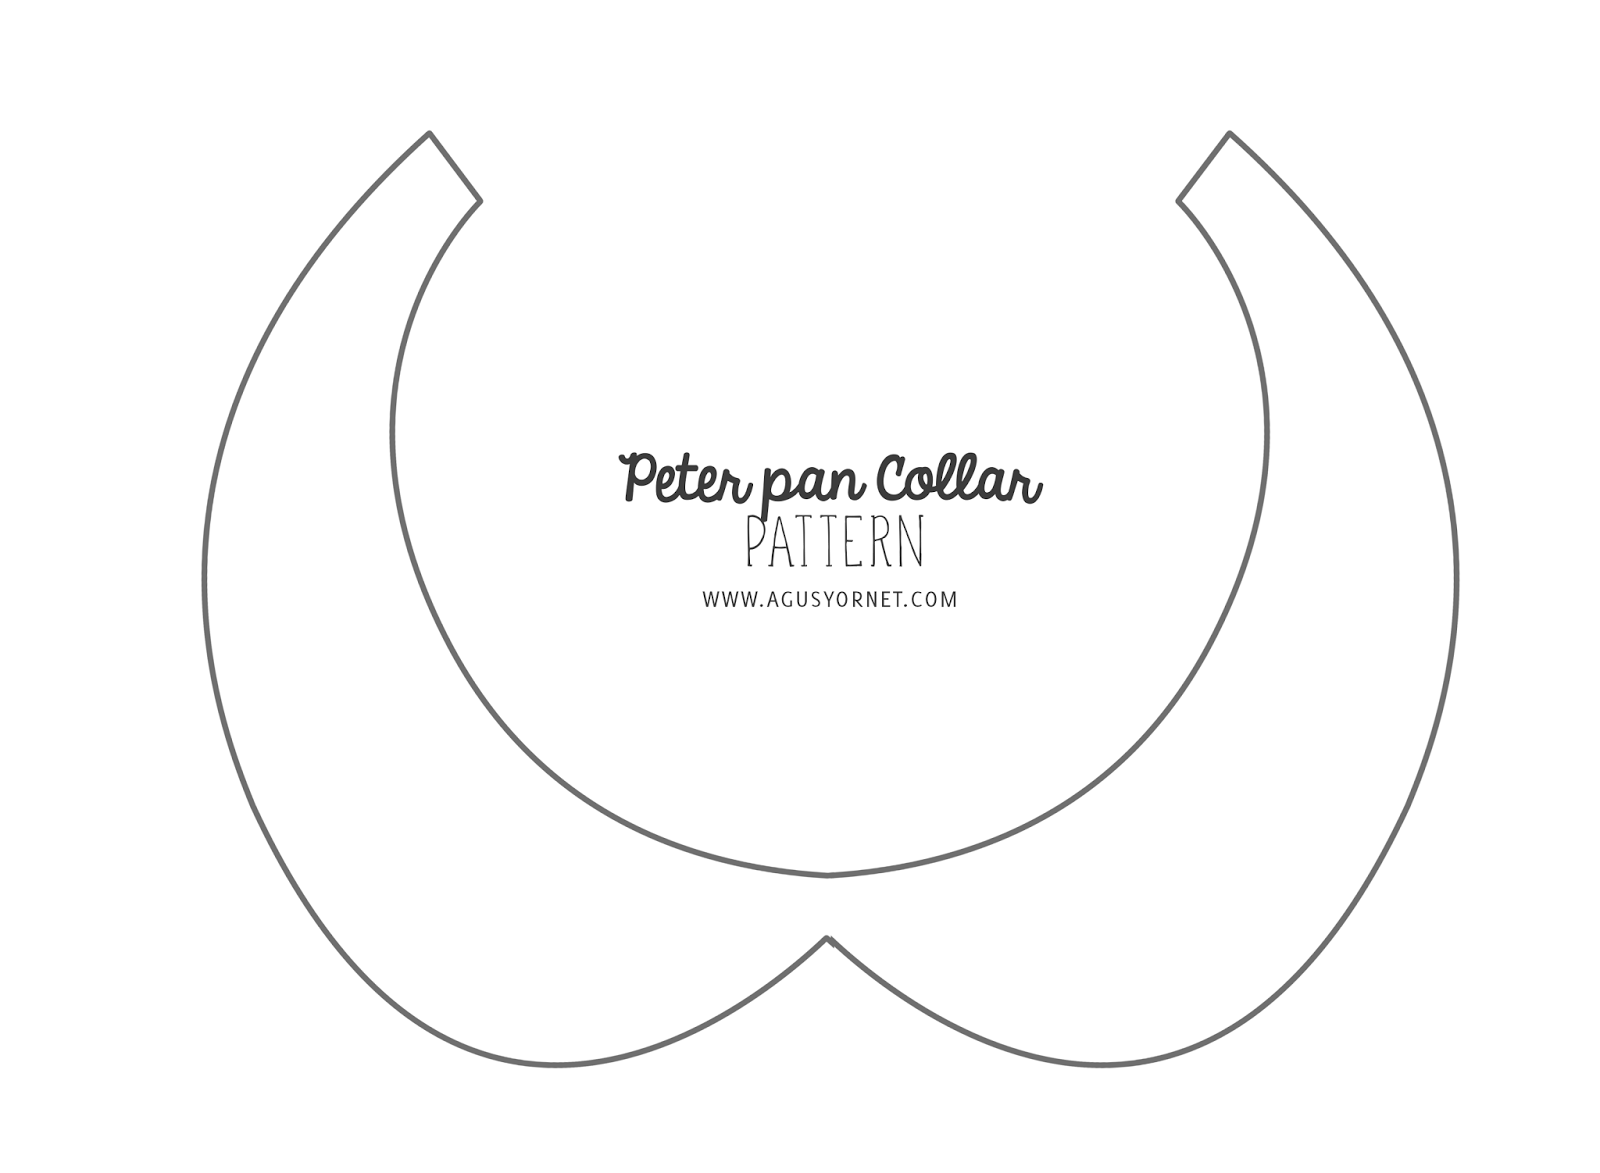 peter pan collar pattern - Bing Images | Sewing | Pinterest ...